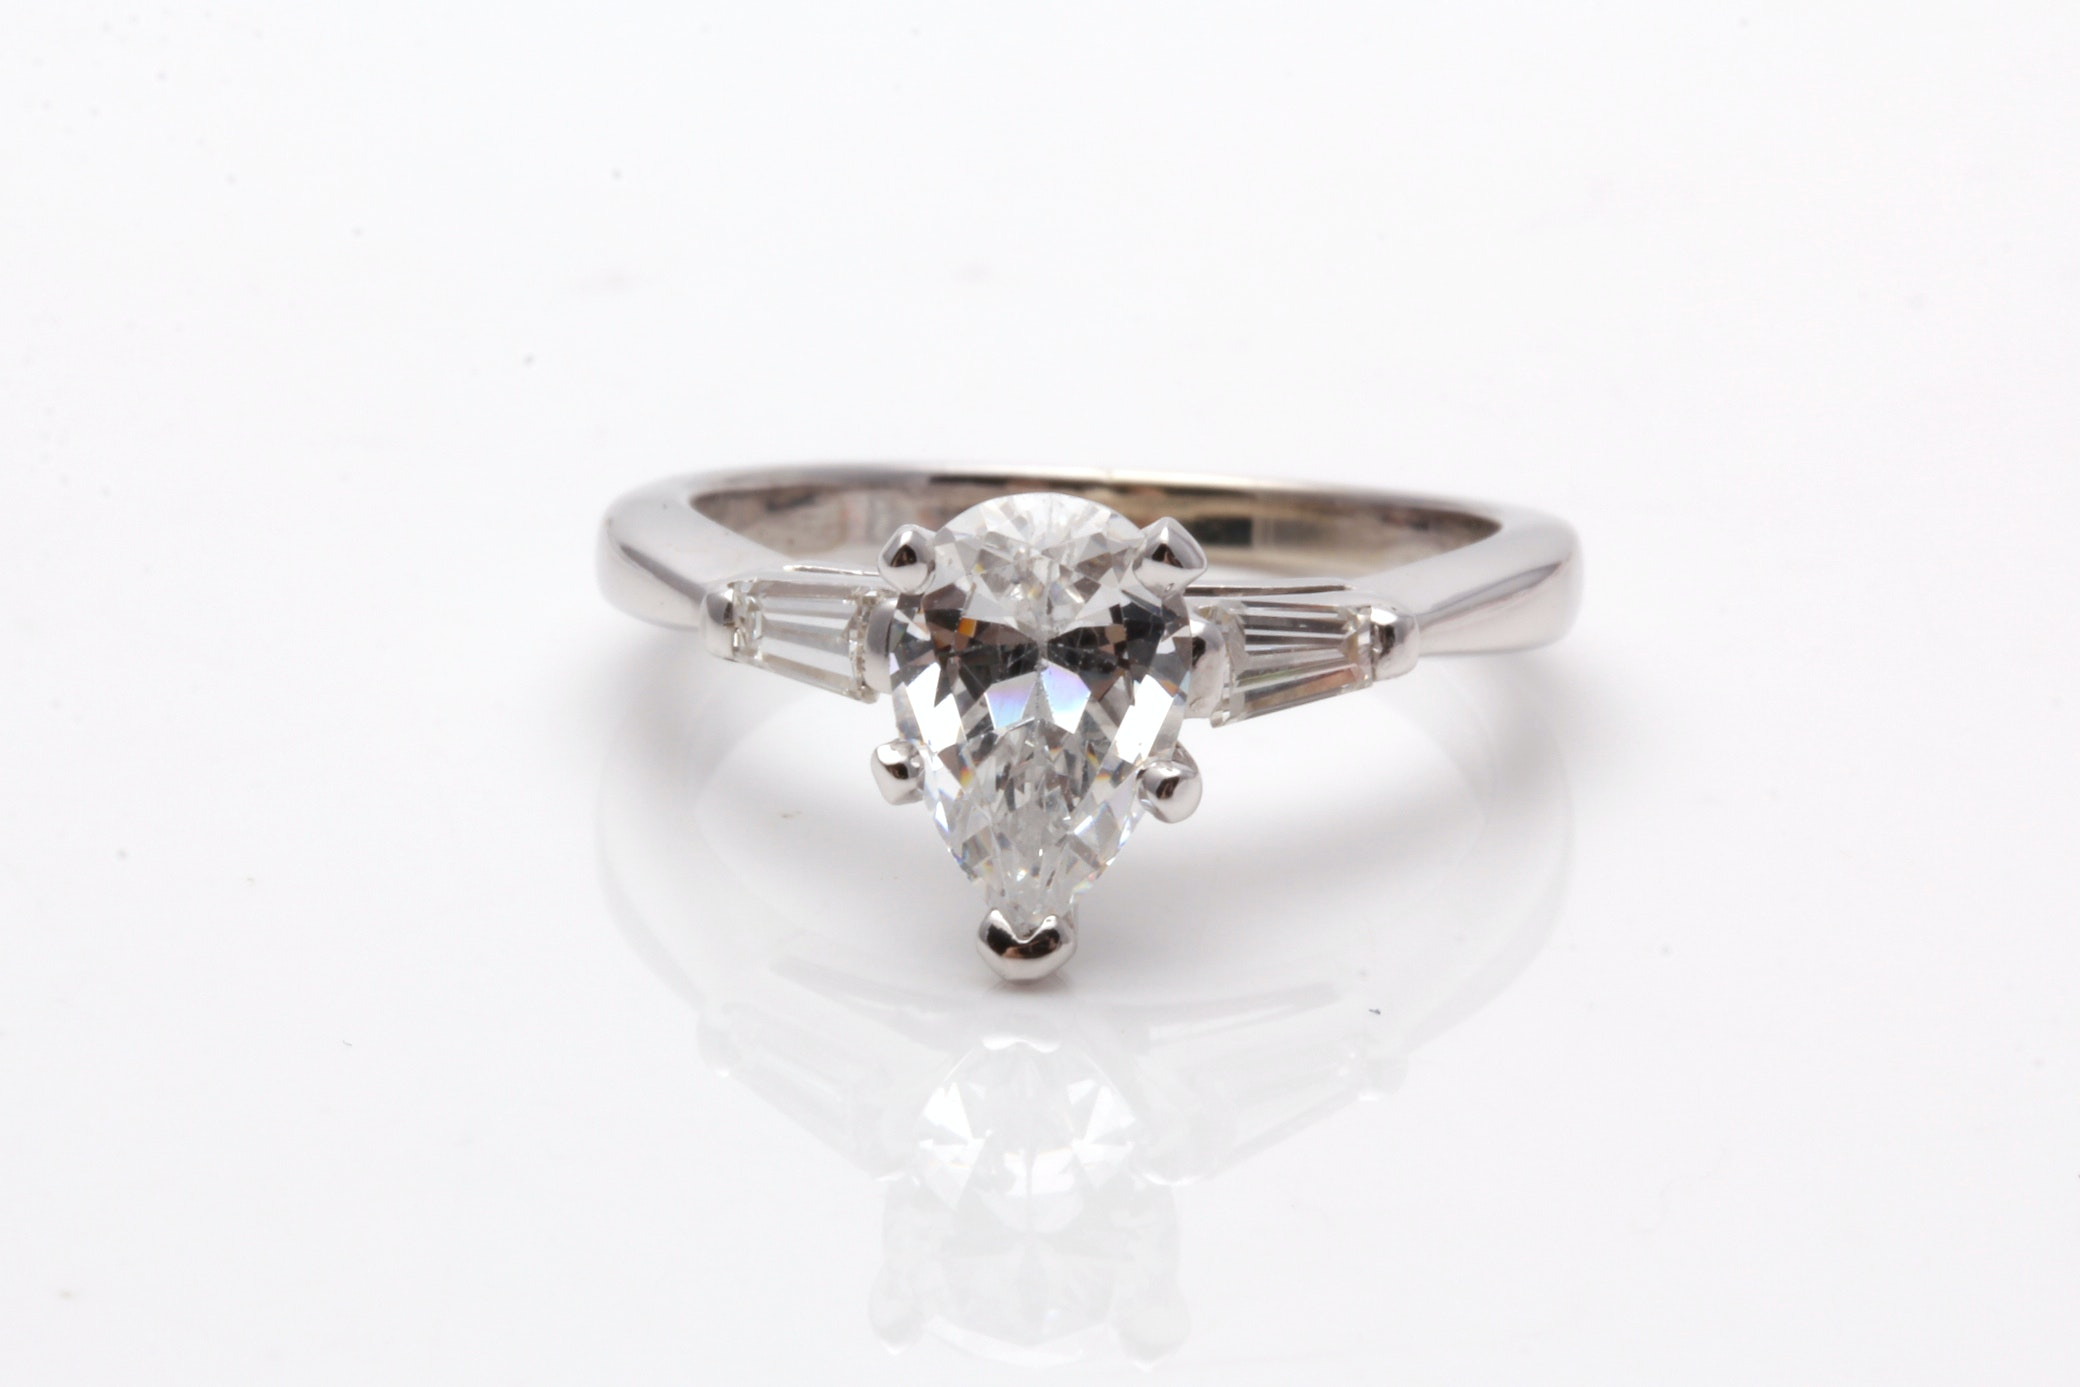 14K White Gold Semi Mount Diamond Ring With Cubic Zirconia Center Stone